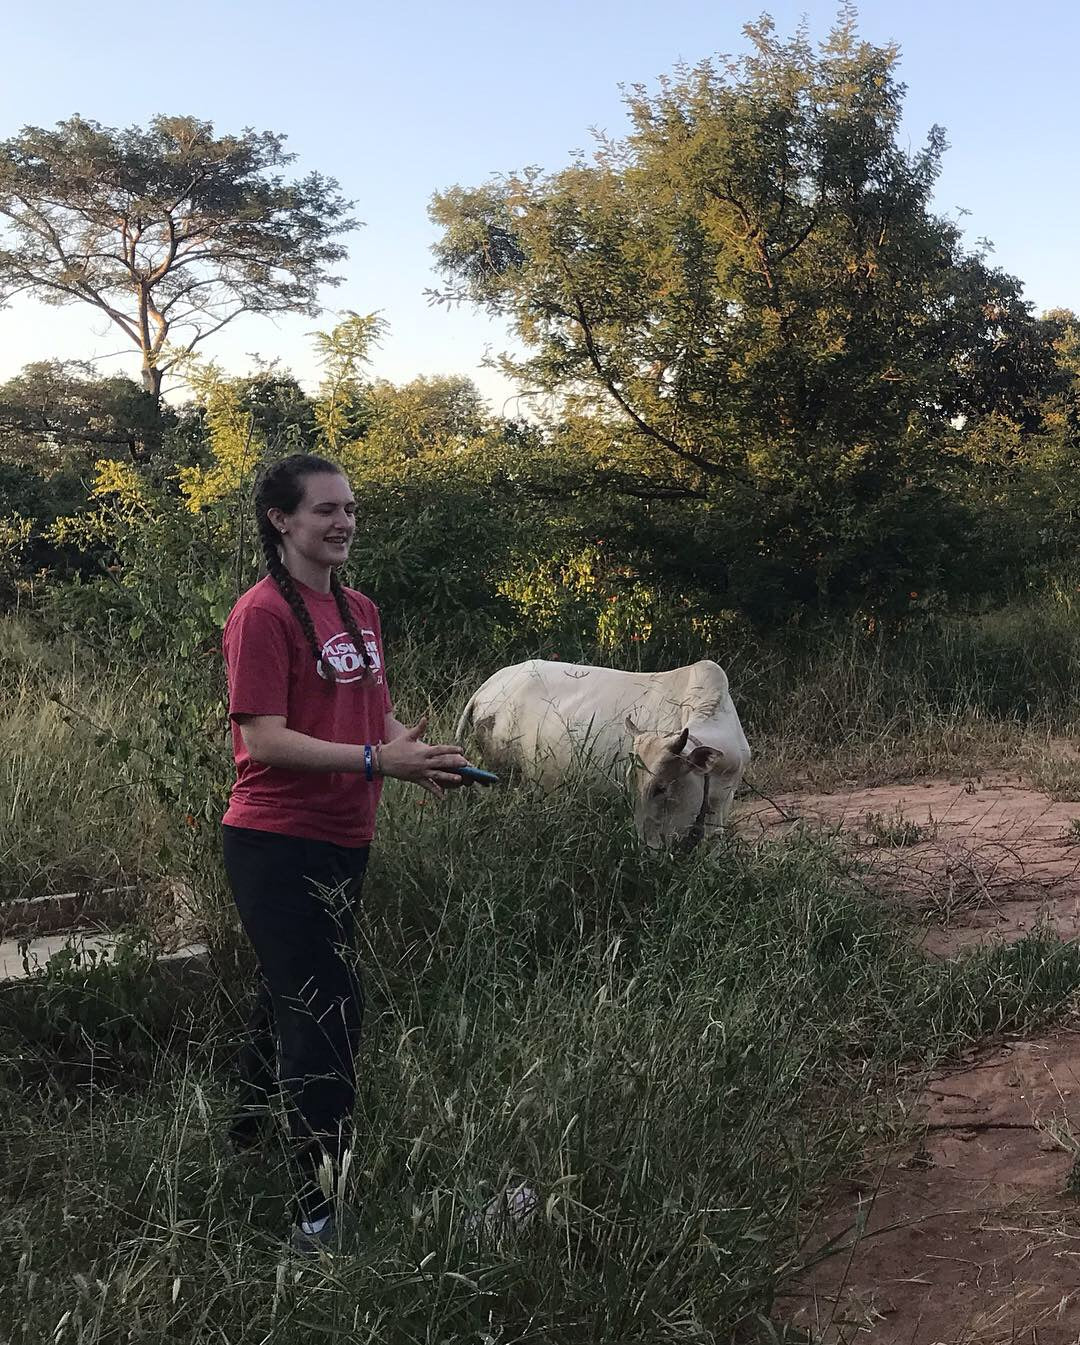 Esther Schultz while in Zambia